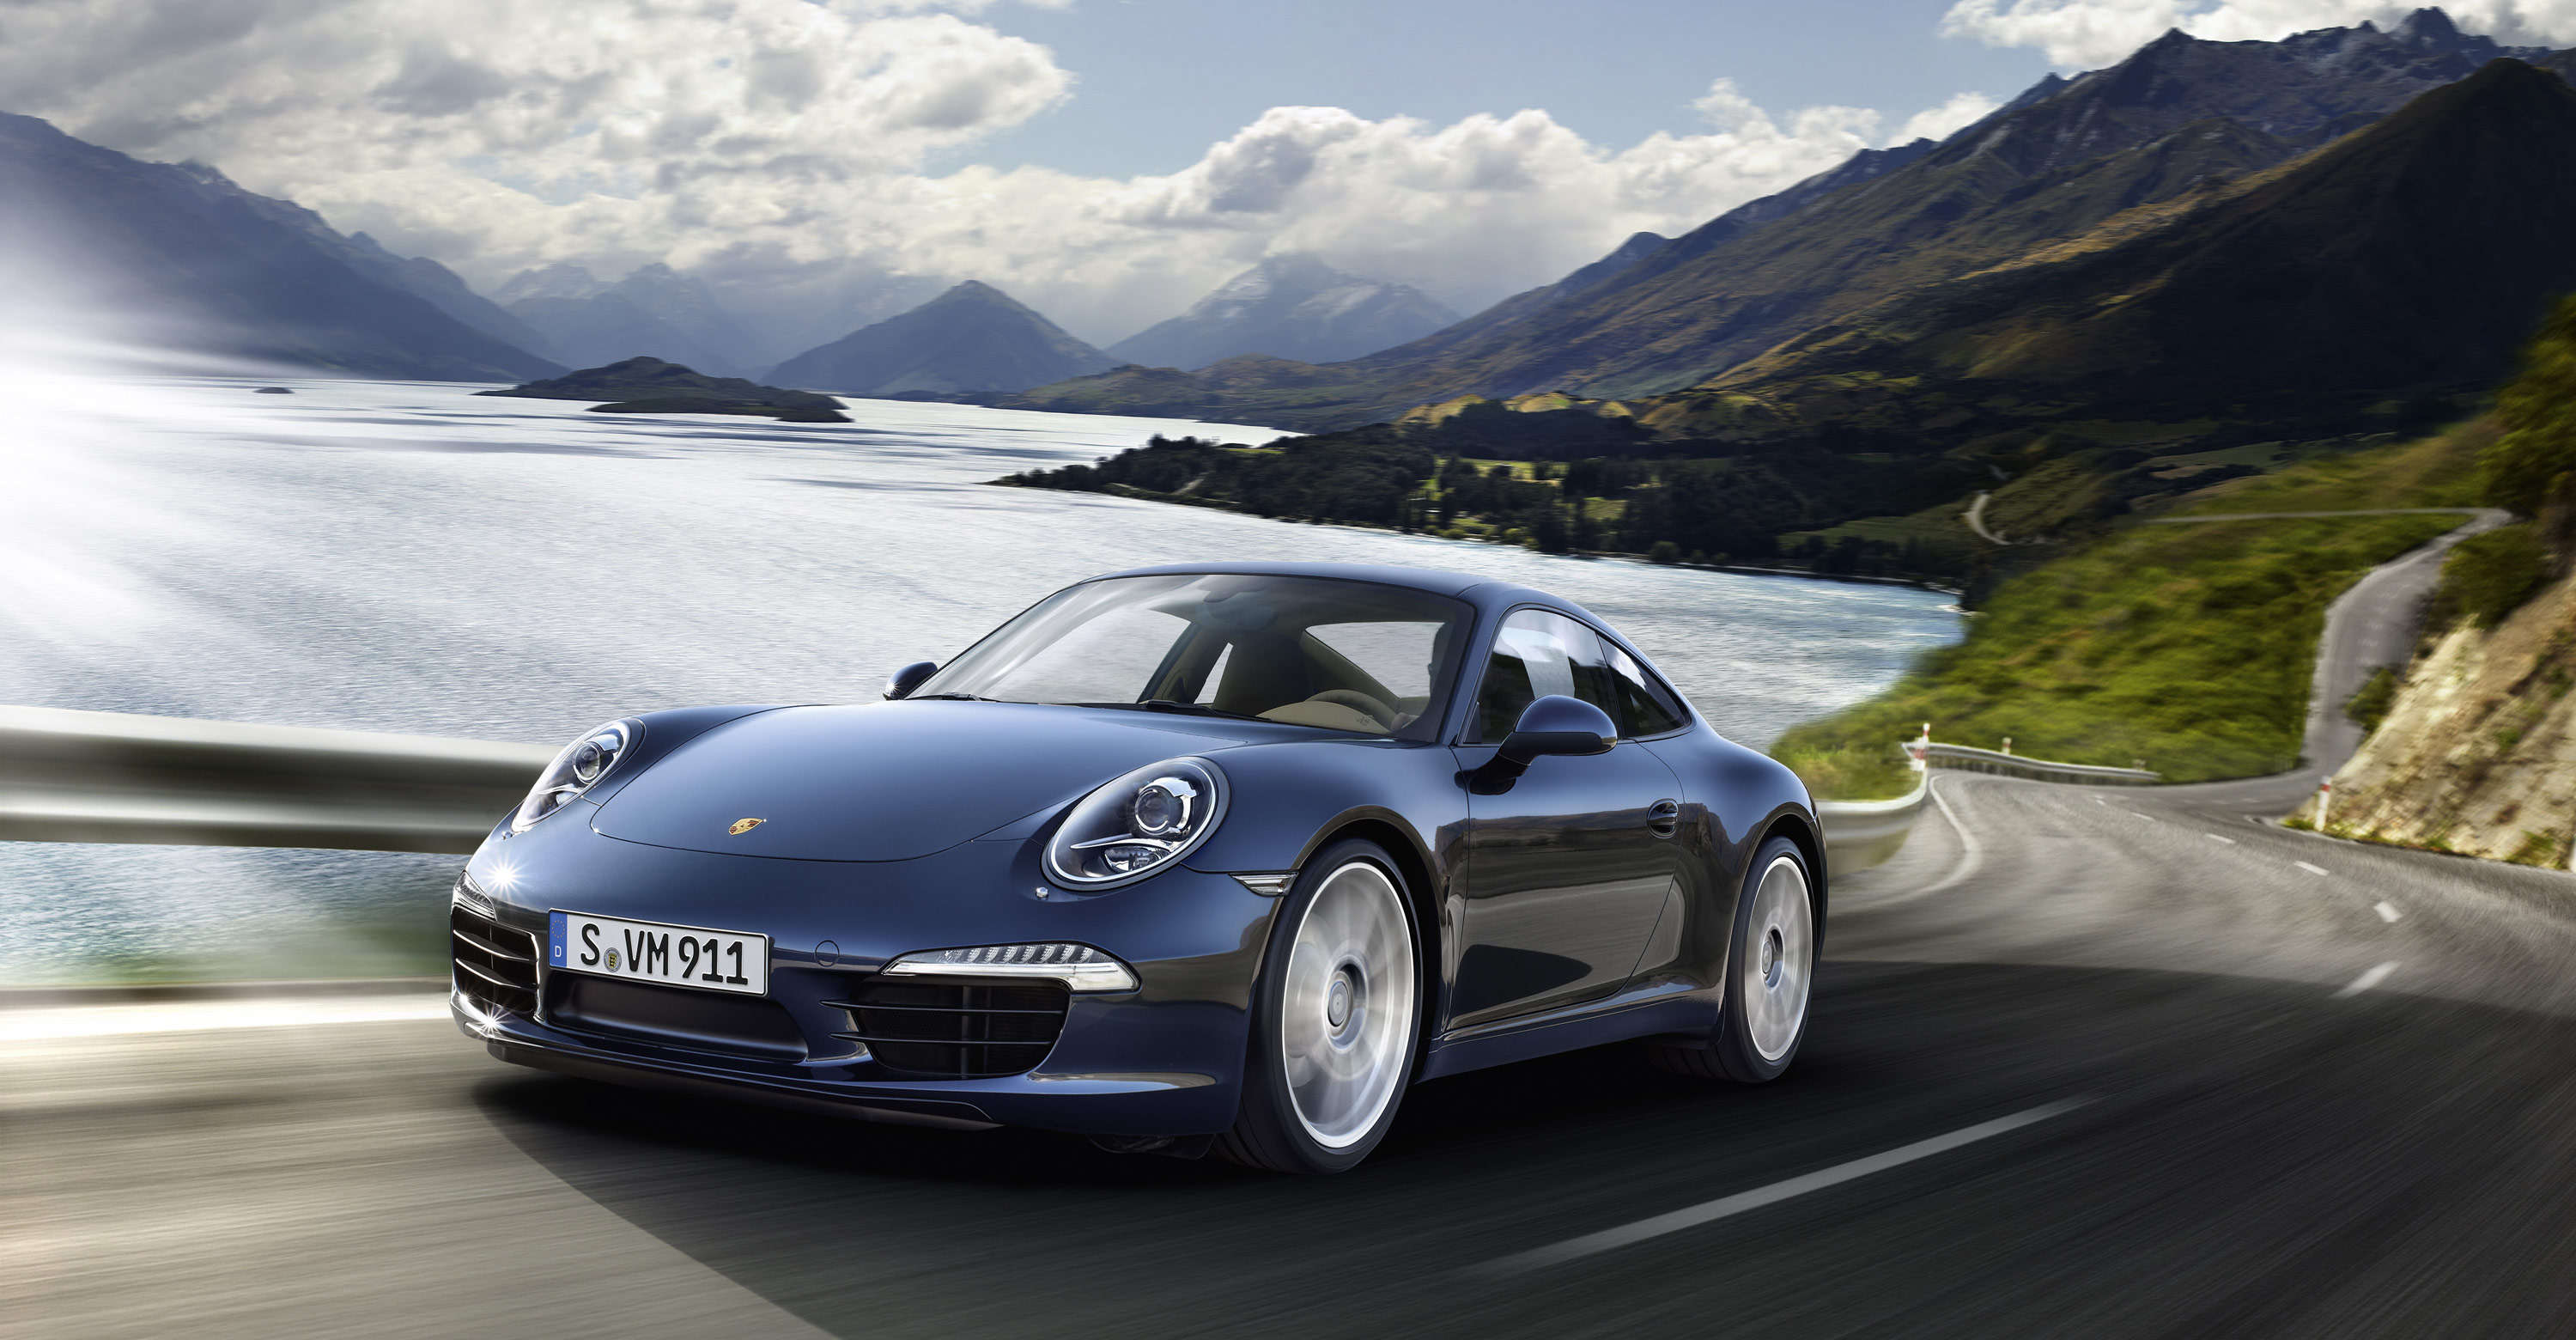 2012 blue Porsche 911 Carrera S wallpapers 3000x1560